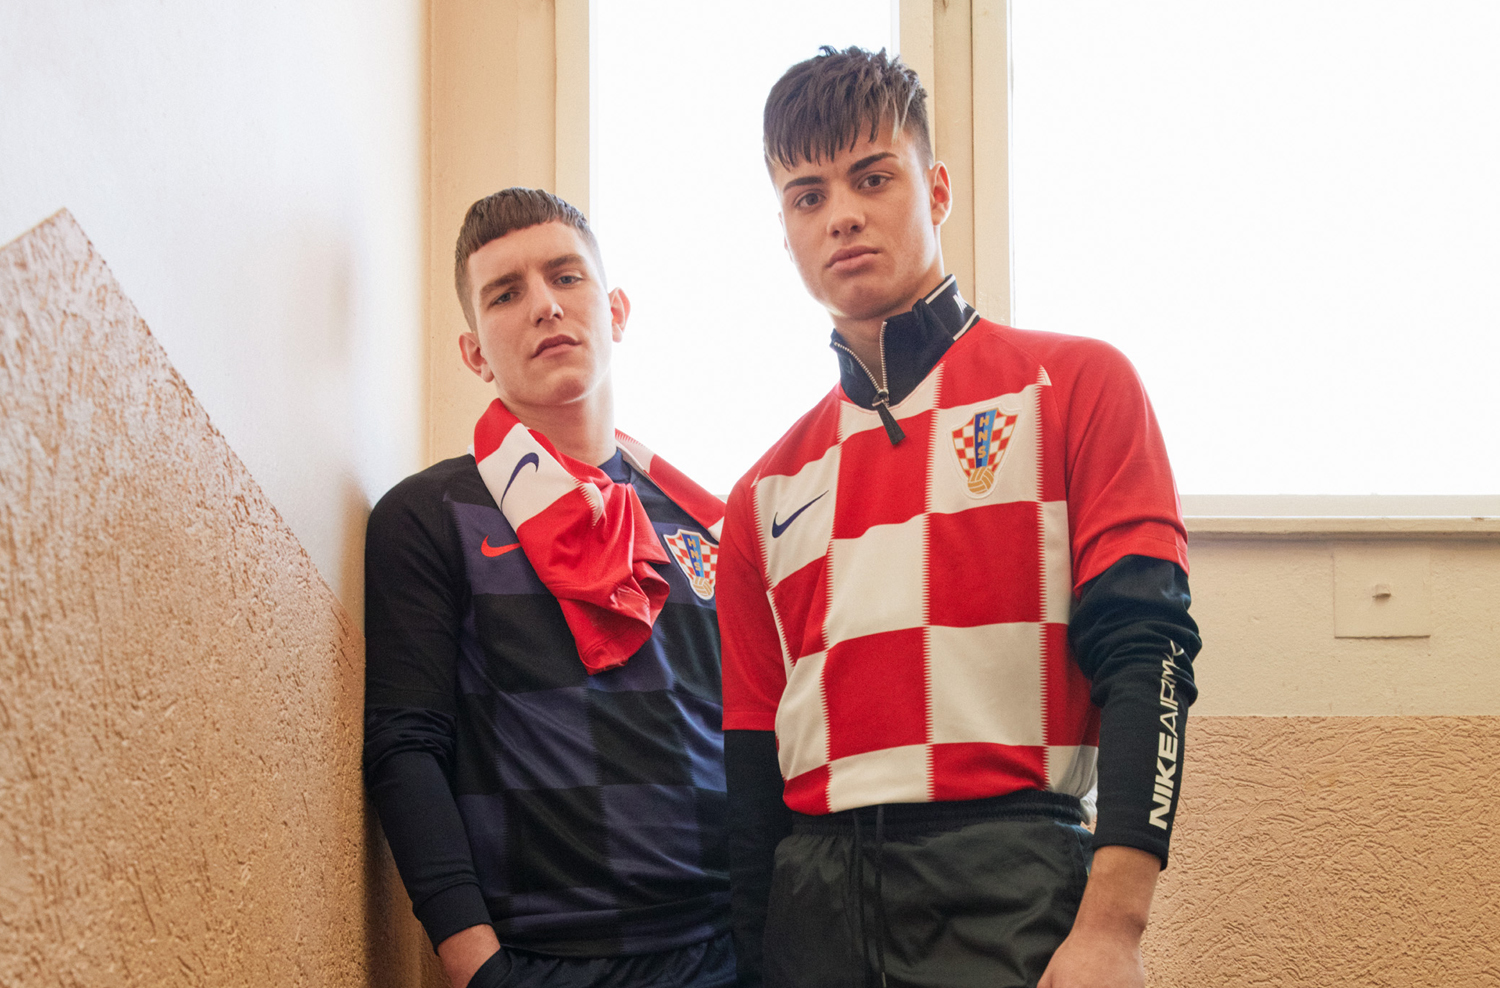 ... typical of Nike s 2018 Vapor template. A similar zig-zag detail is  applied to the checkers on the front of the Croatia 2018 World Cup home  shirt. 5d7923a65